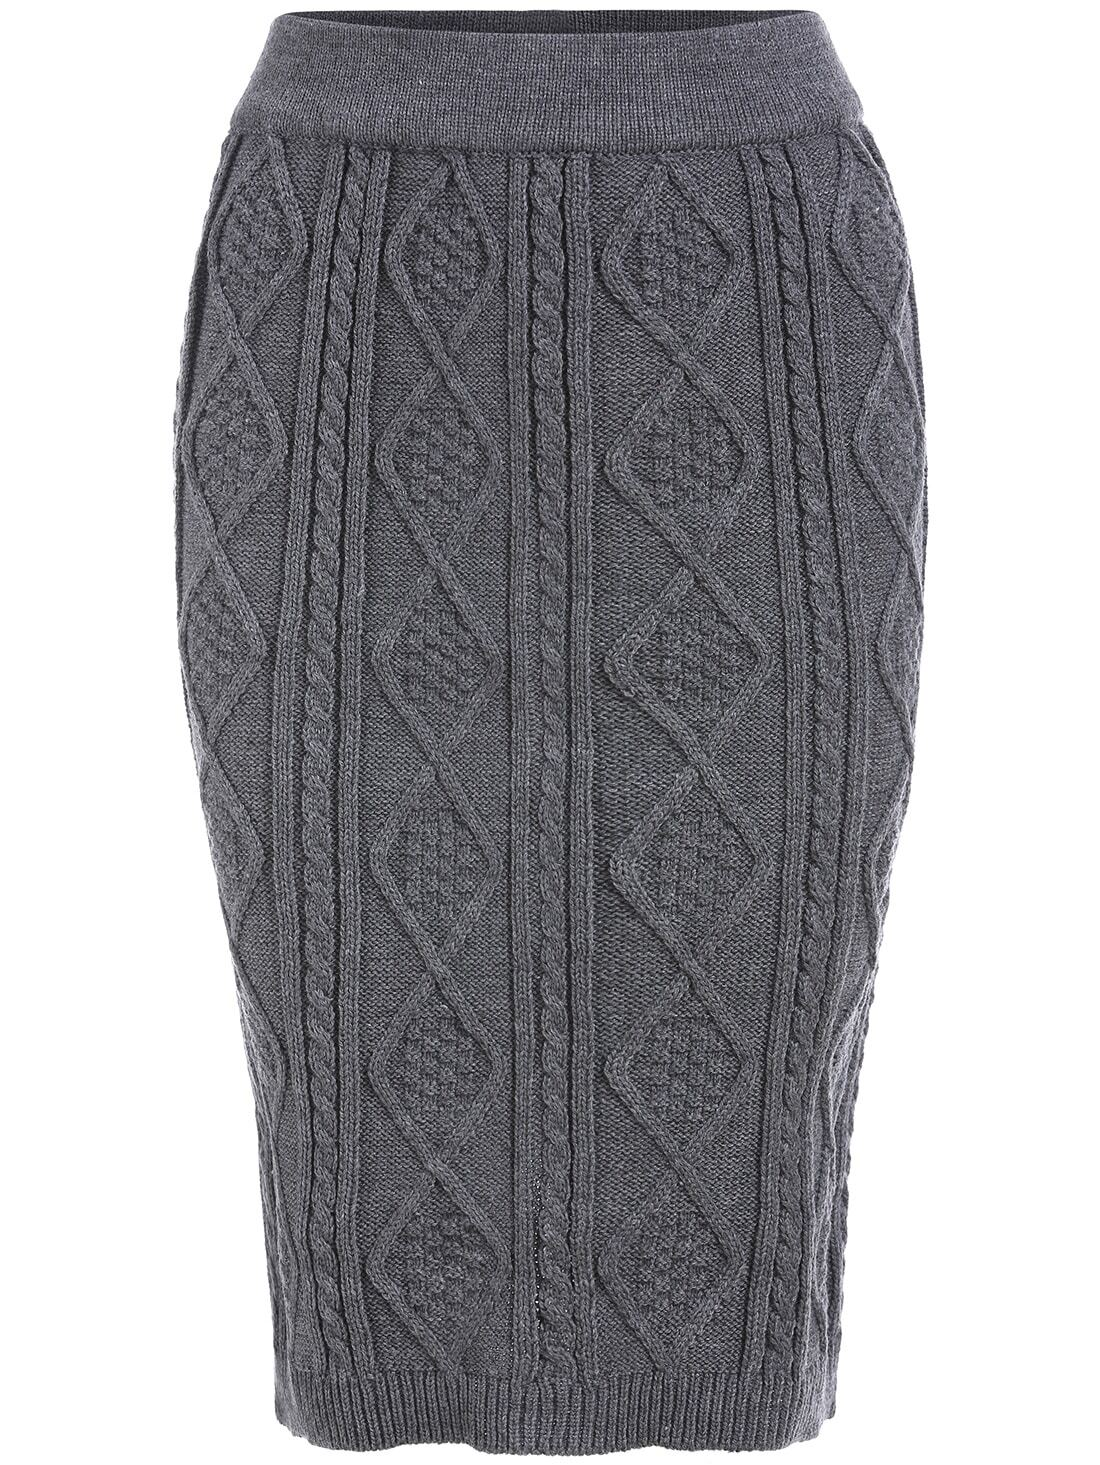 Grey Diamond Patterned Cable Knit Skirt -SheIn(Sheinside)